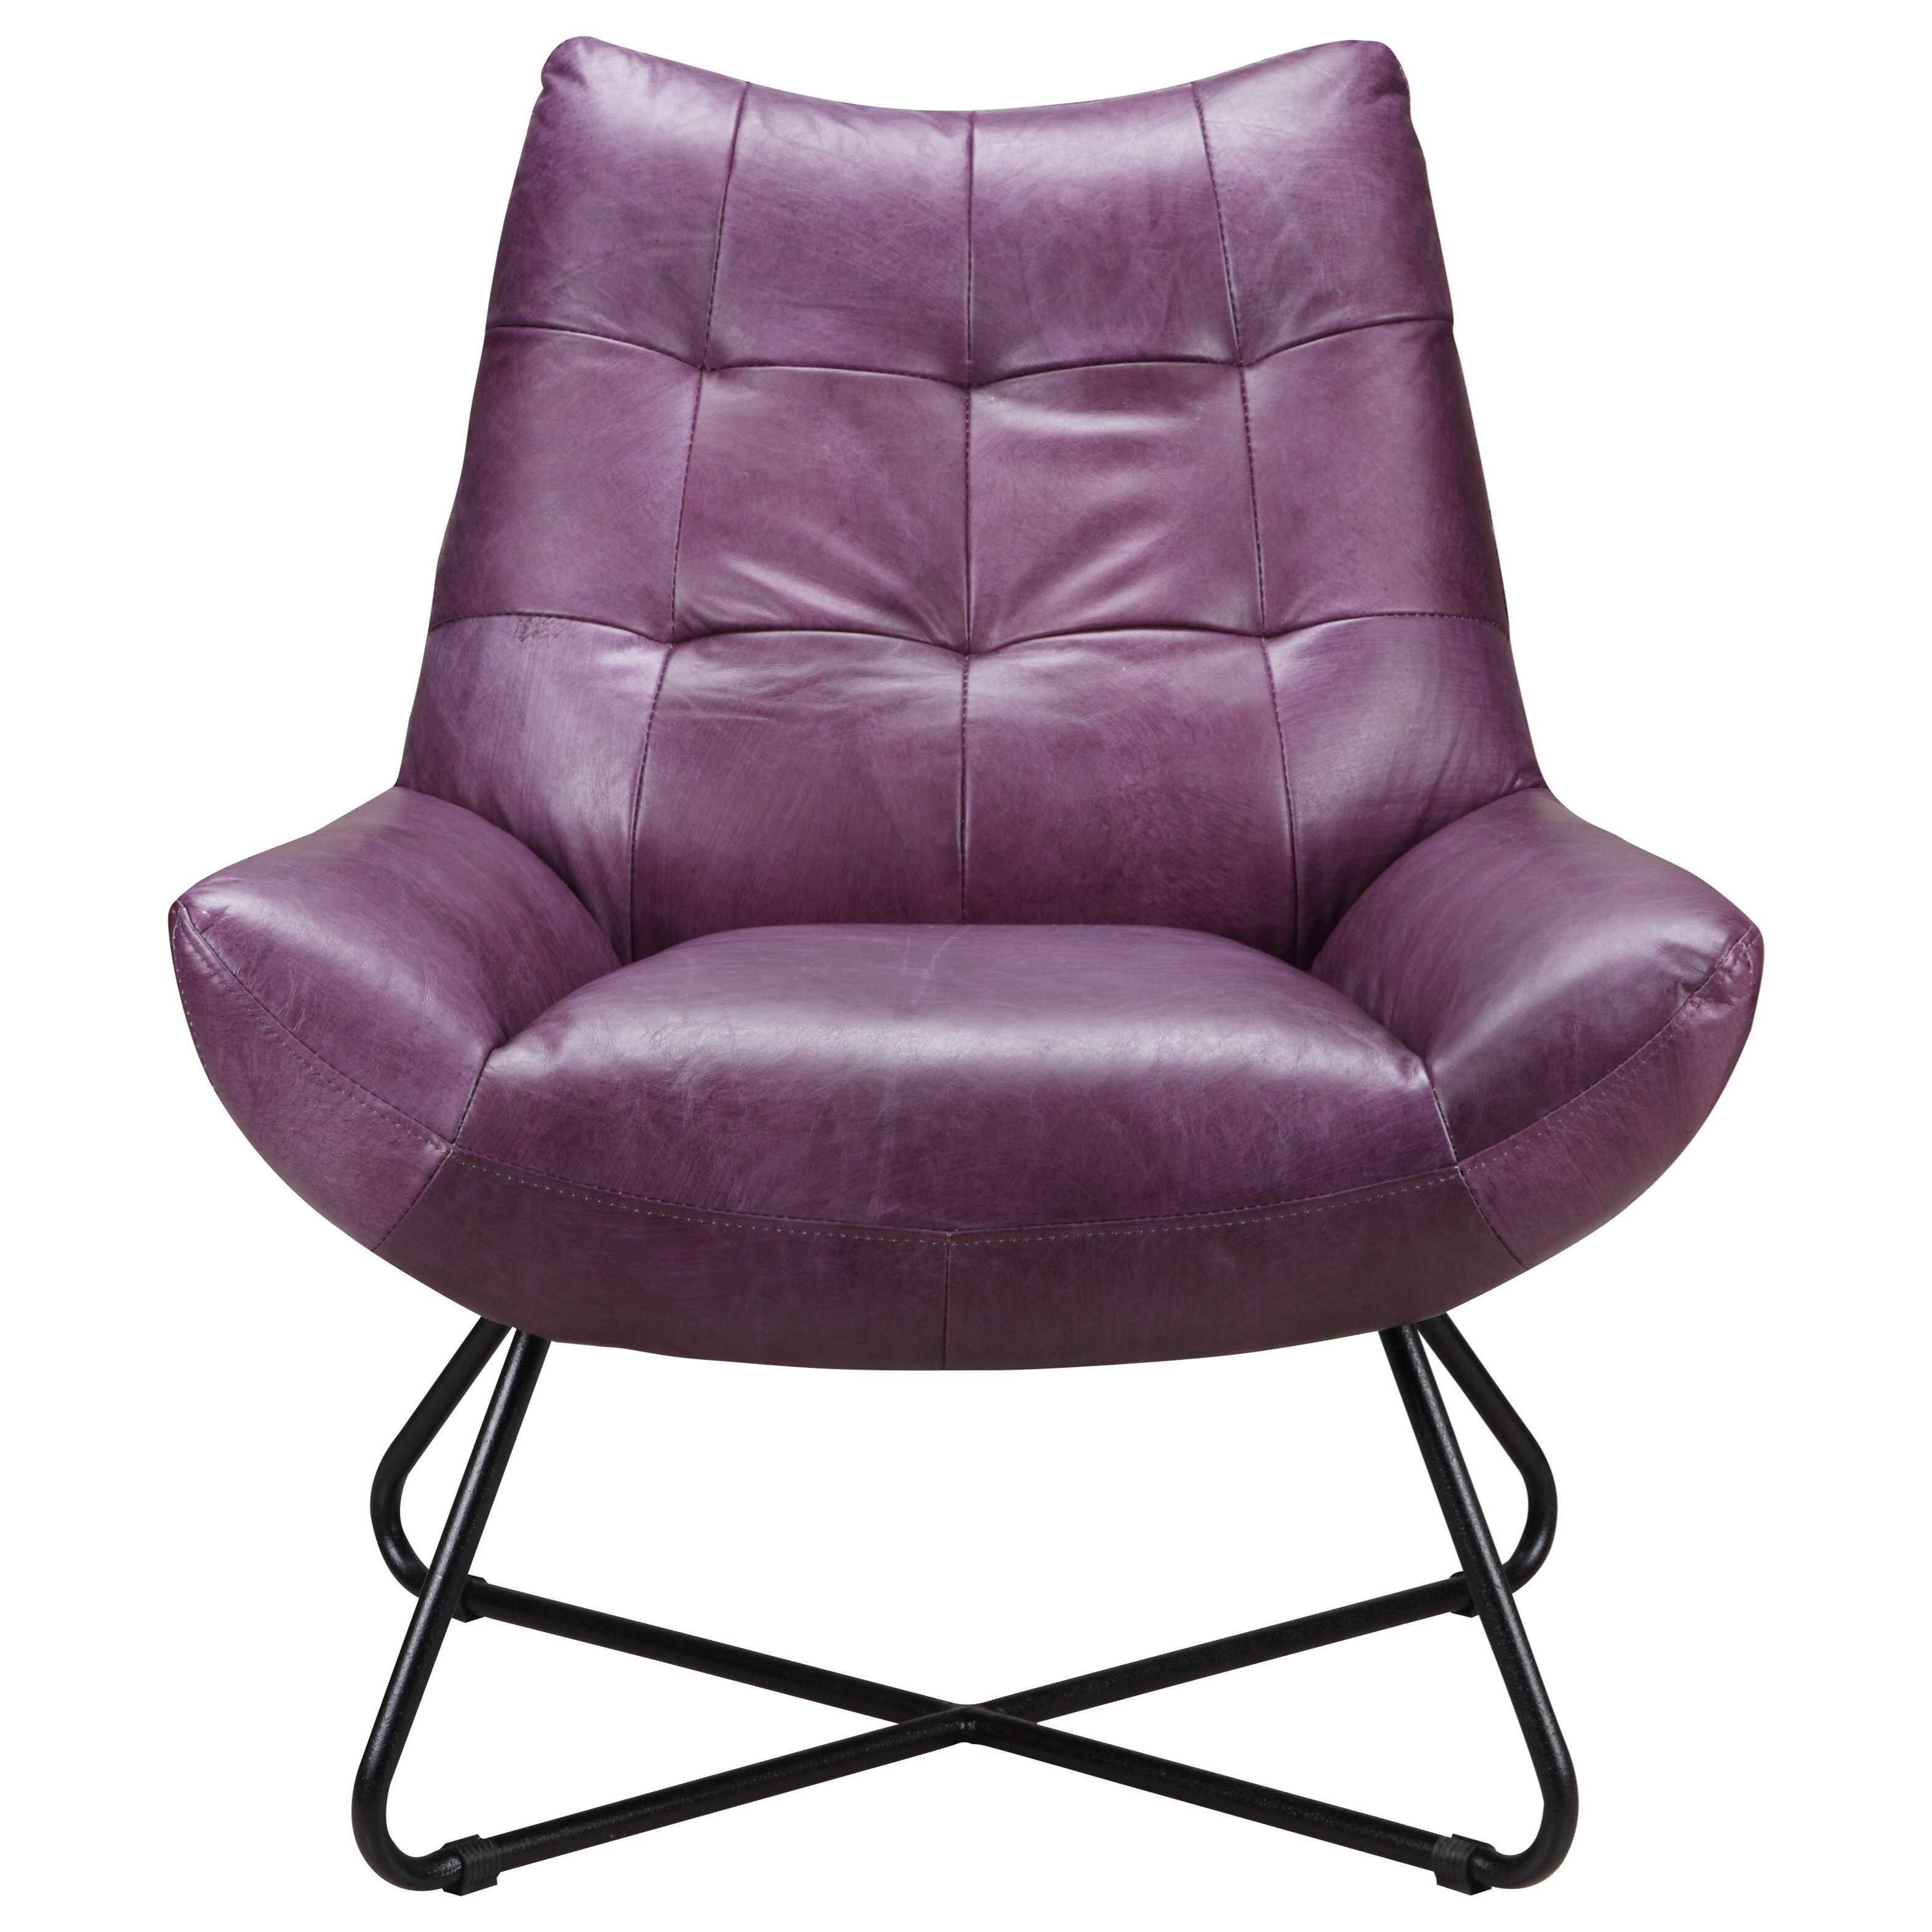 Graduate  Lounge Chair by Moe's Home Collection at Stoney Creek Furniture